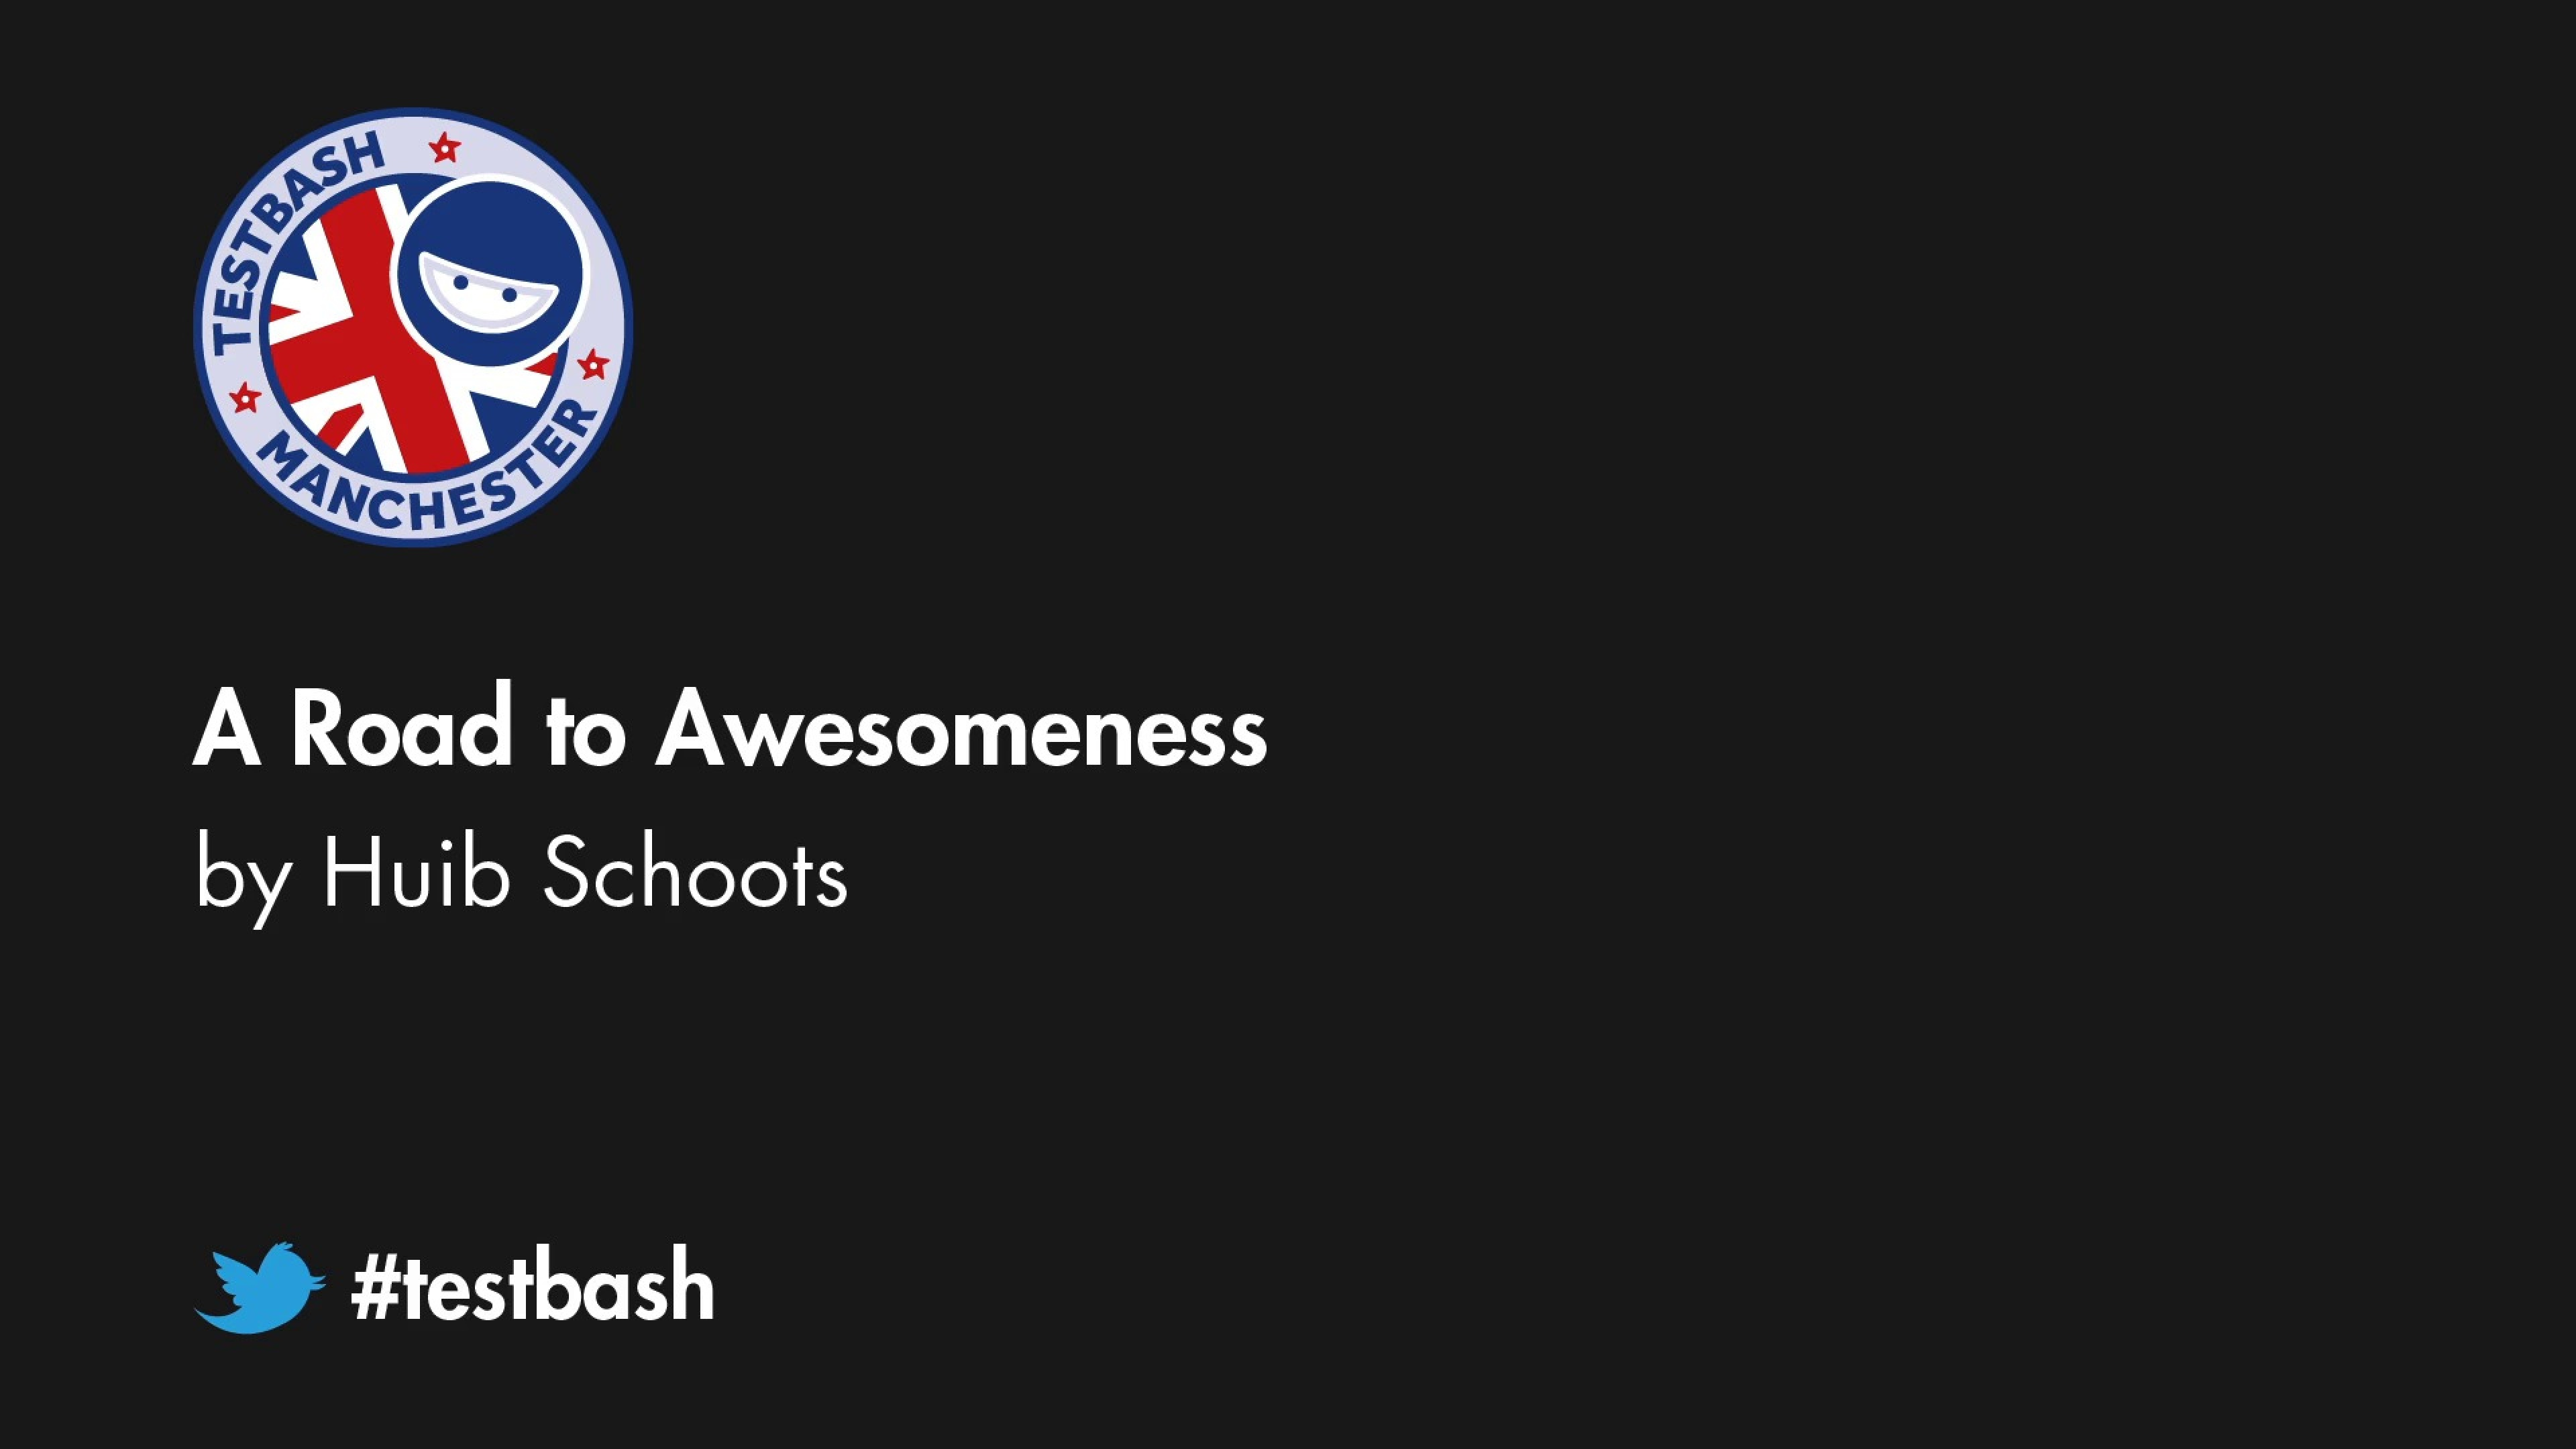 A Road to Awesomeness – Huib Schoots